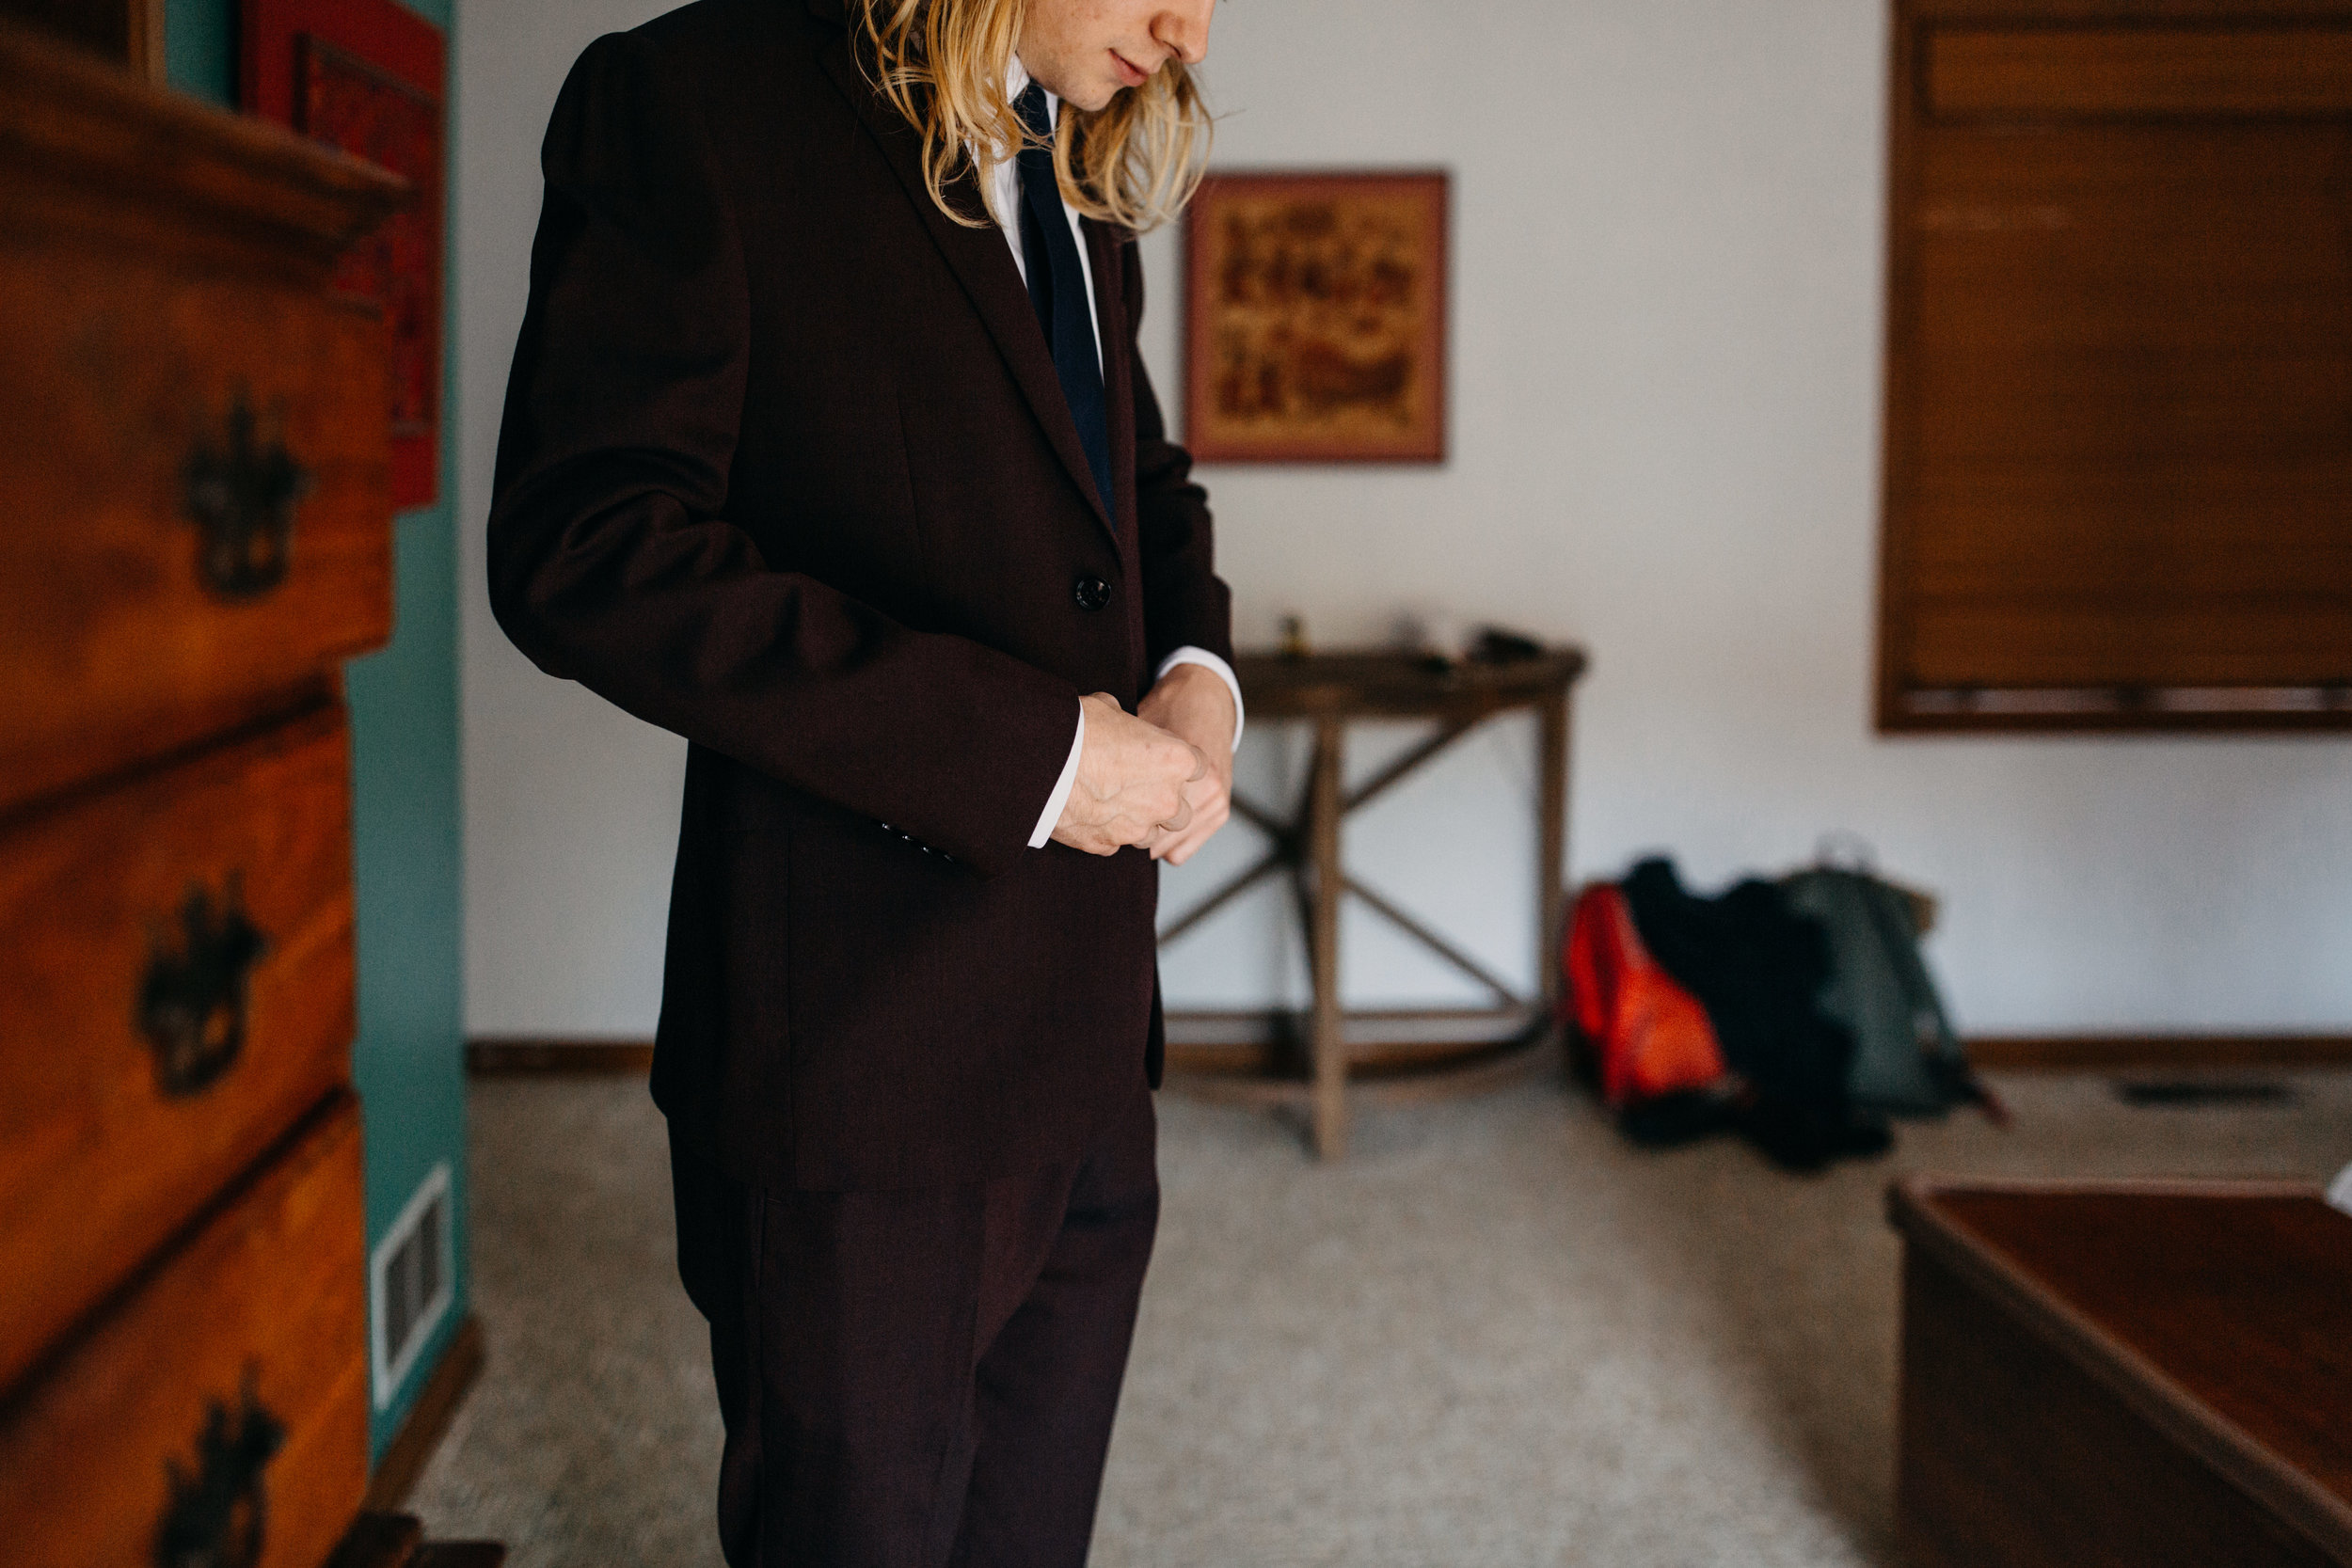 Jessie + Matt Modern Groom's Suit from Express | Inner Images Photography